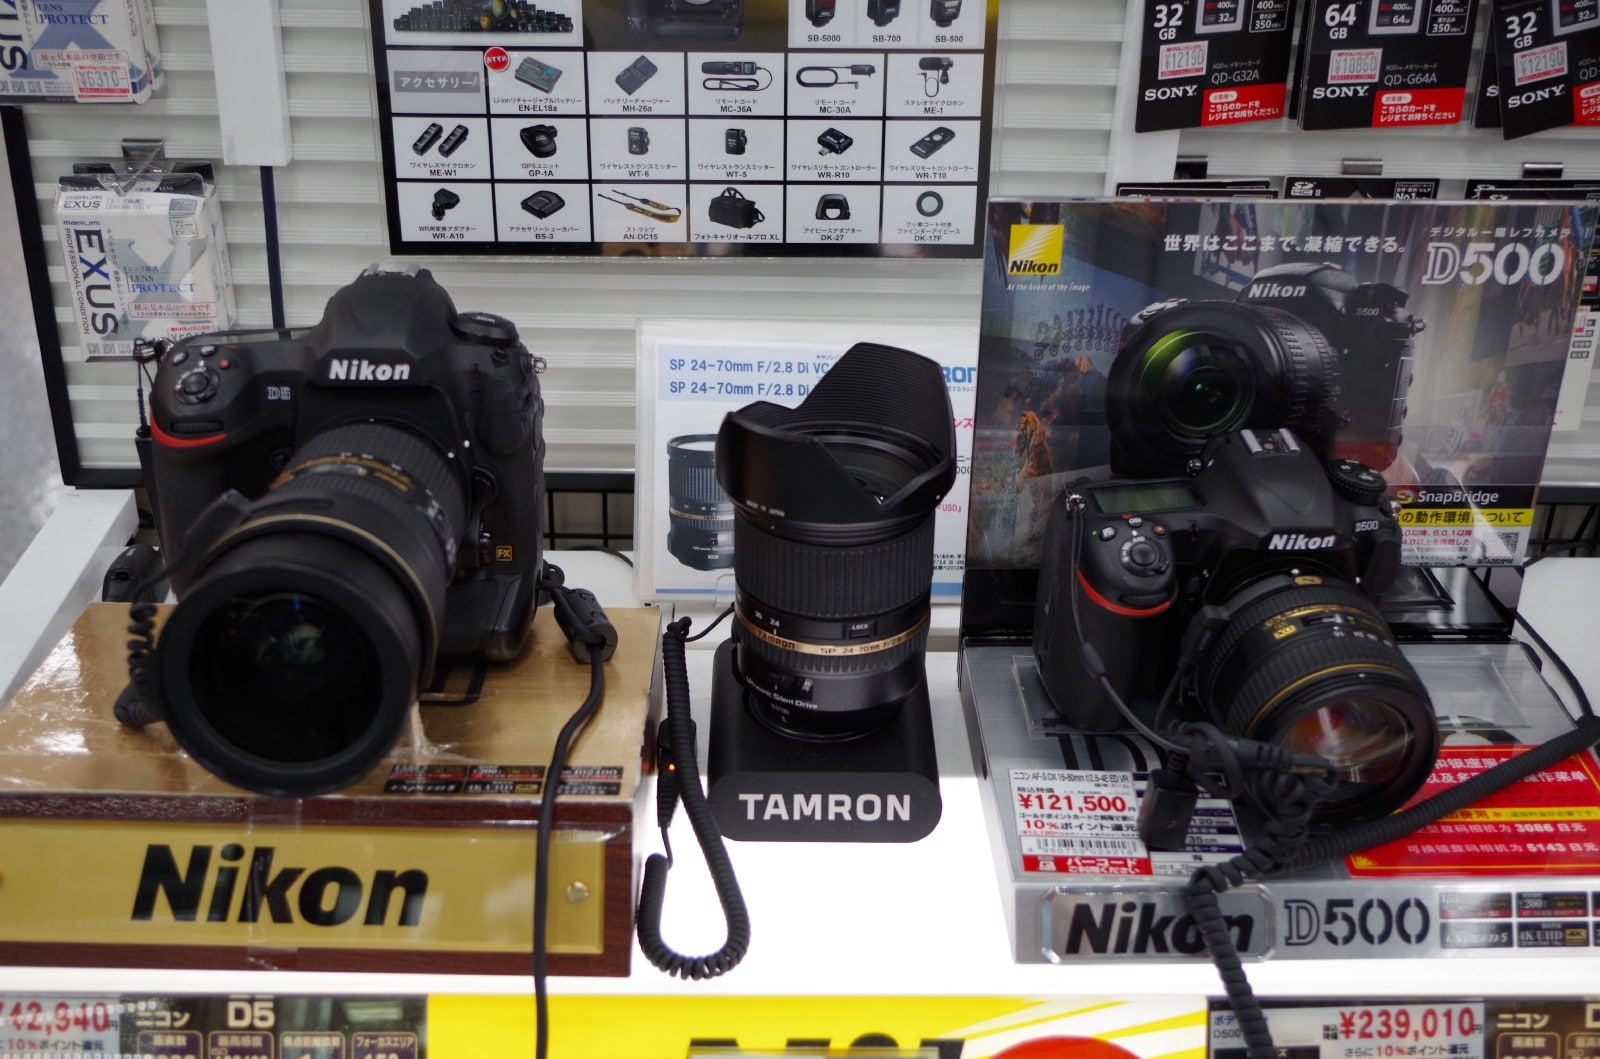 Camera at Yodobashi-Akiba